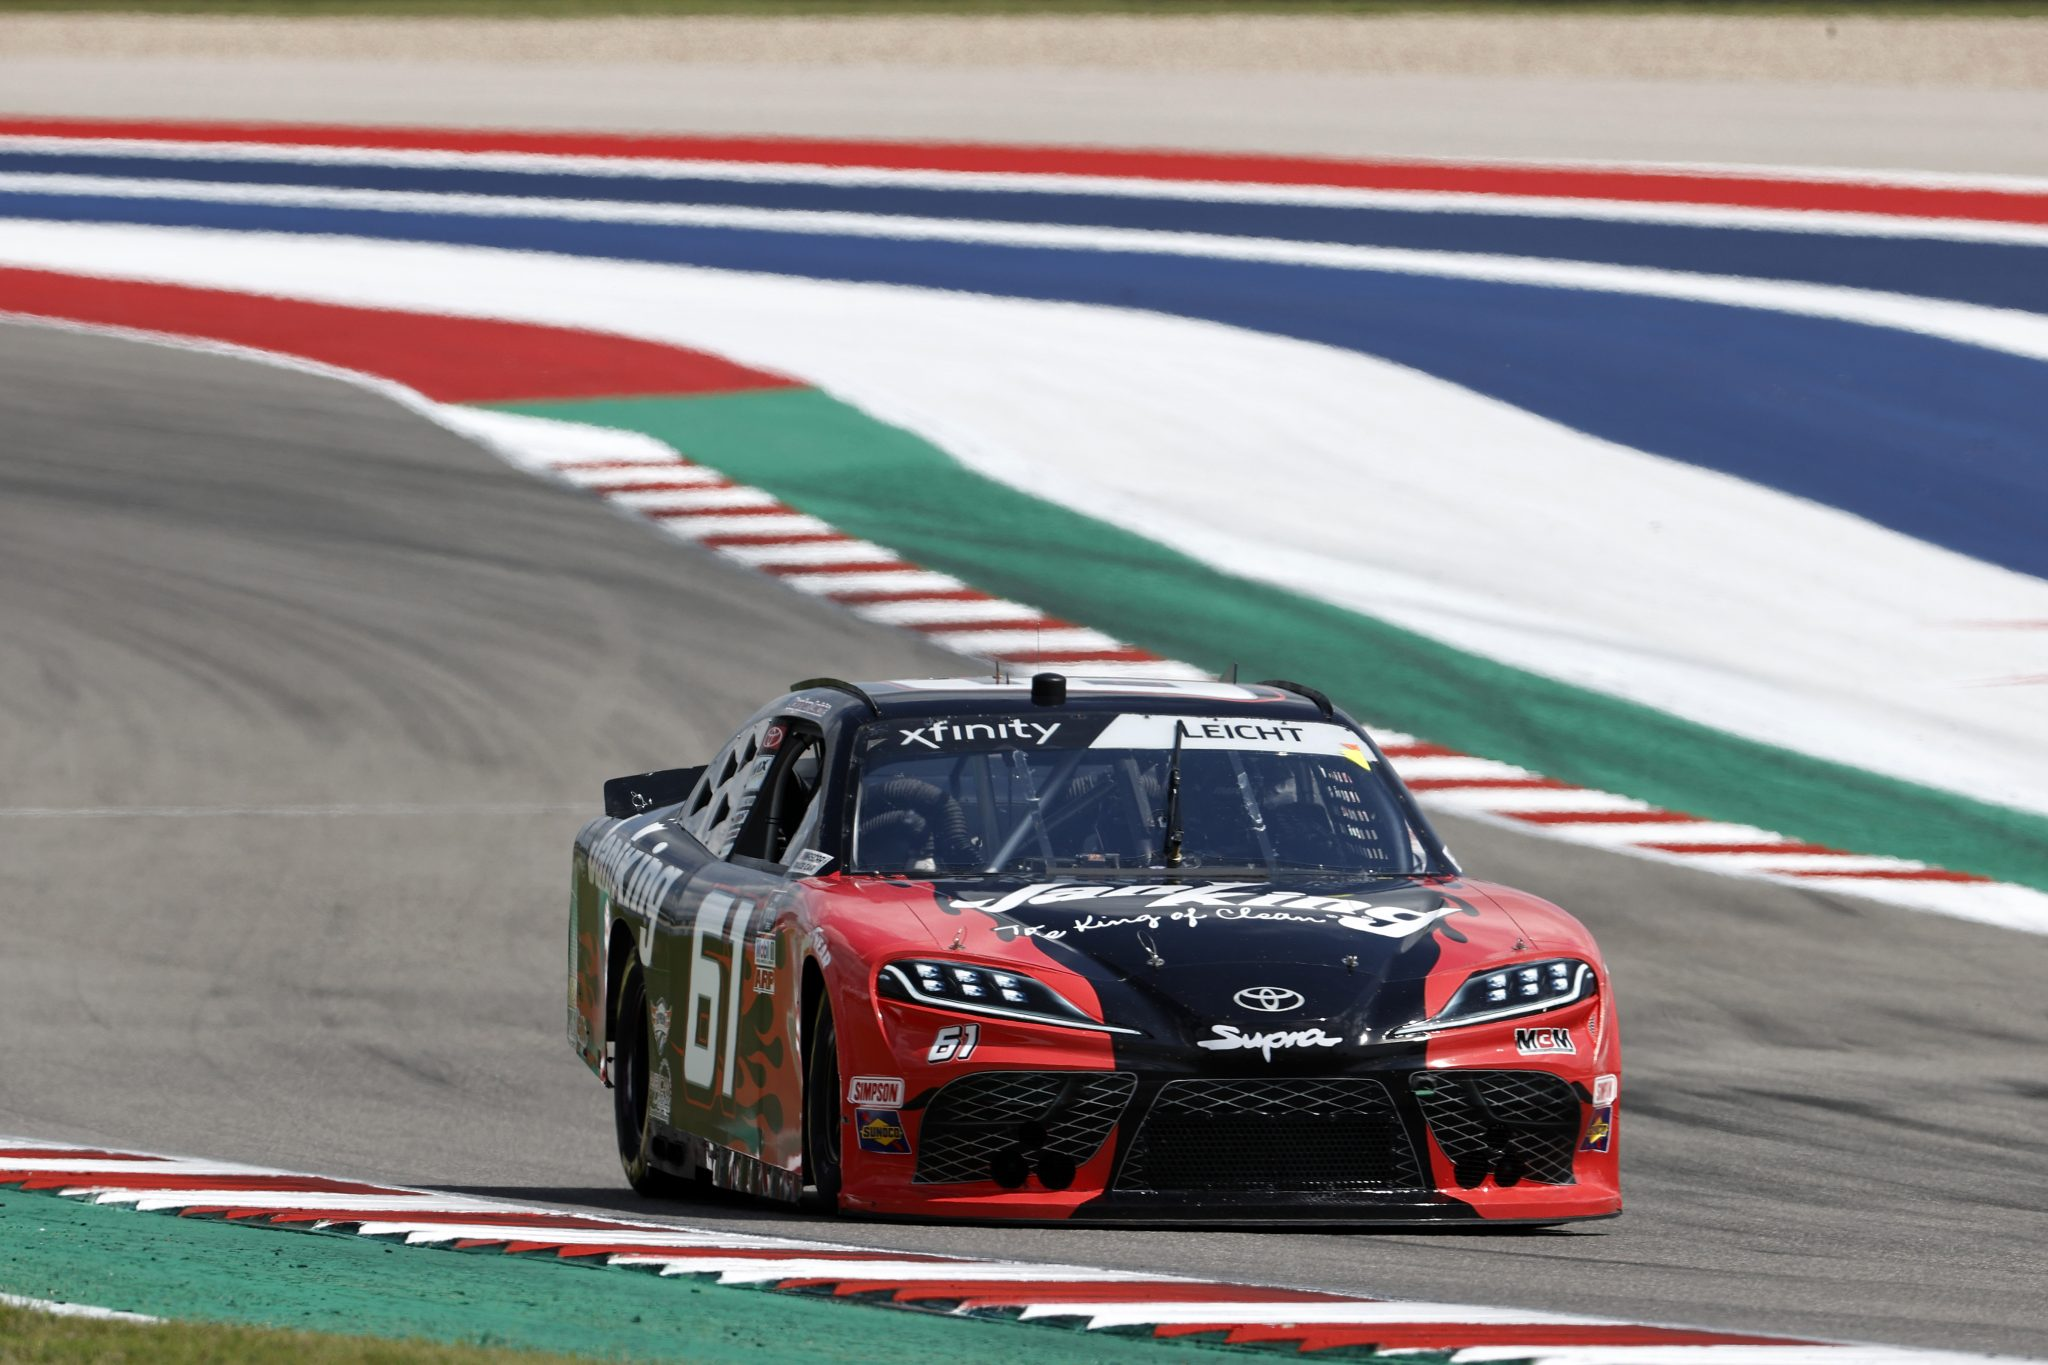 AUSTIN, TEXAS - MAY 21: Stephen Leicht, driver of the #61 Janiking Toyota, drives during practice for the NASCAR Xfinity Series Pit Boss 250 at Circuit of The Americas on May 21, 2021 in Austin, Texas. (Photo by Chris Graythen/Getty Images) | Getty Images